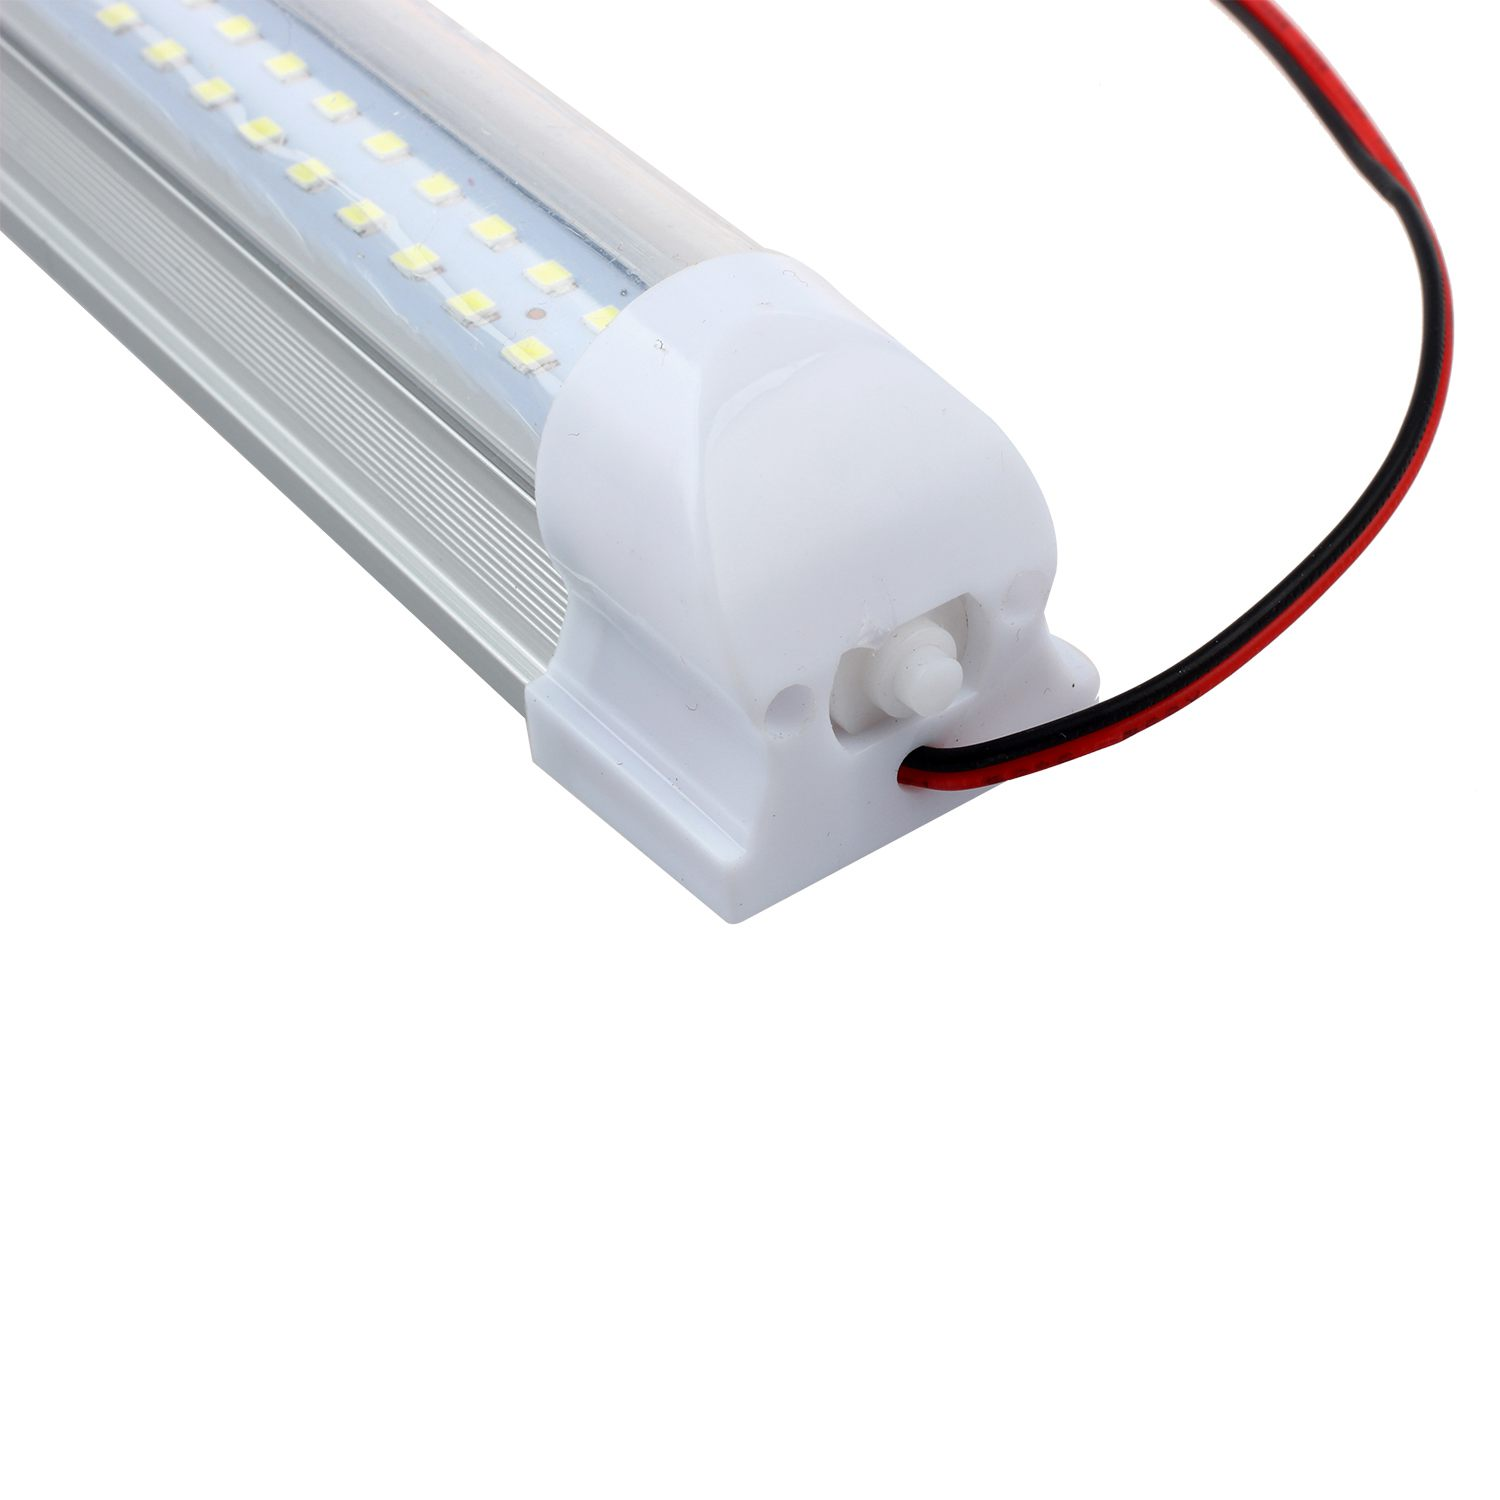 led asp and can welcome bulbs light product markham retailers filament in strip wholesalers